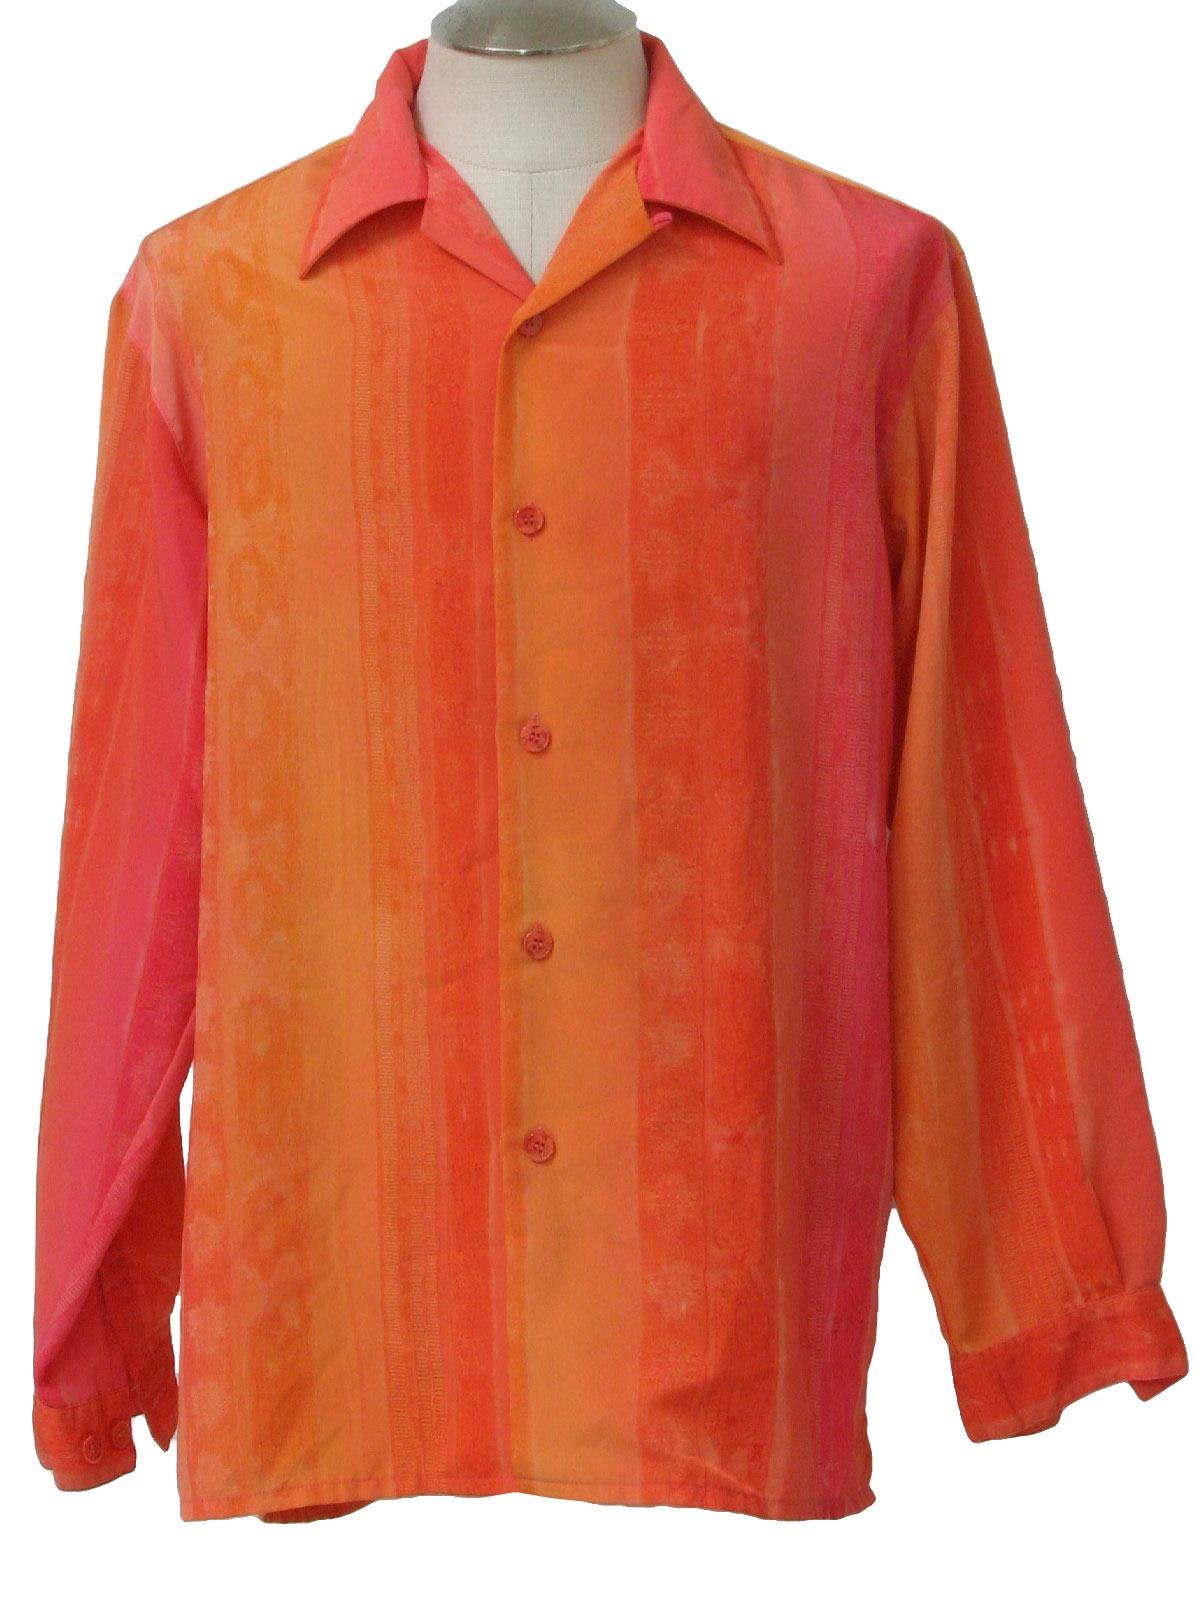 Retro 1990's Shirt (Pronti) : 90s -Pronti- Mens shaded orange ...